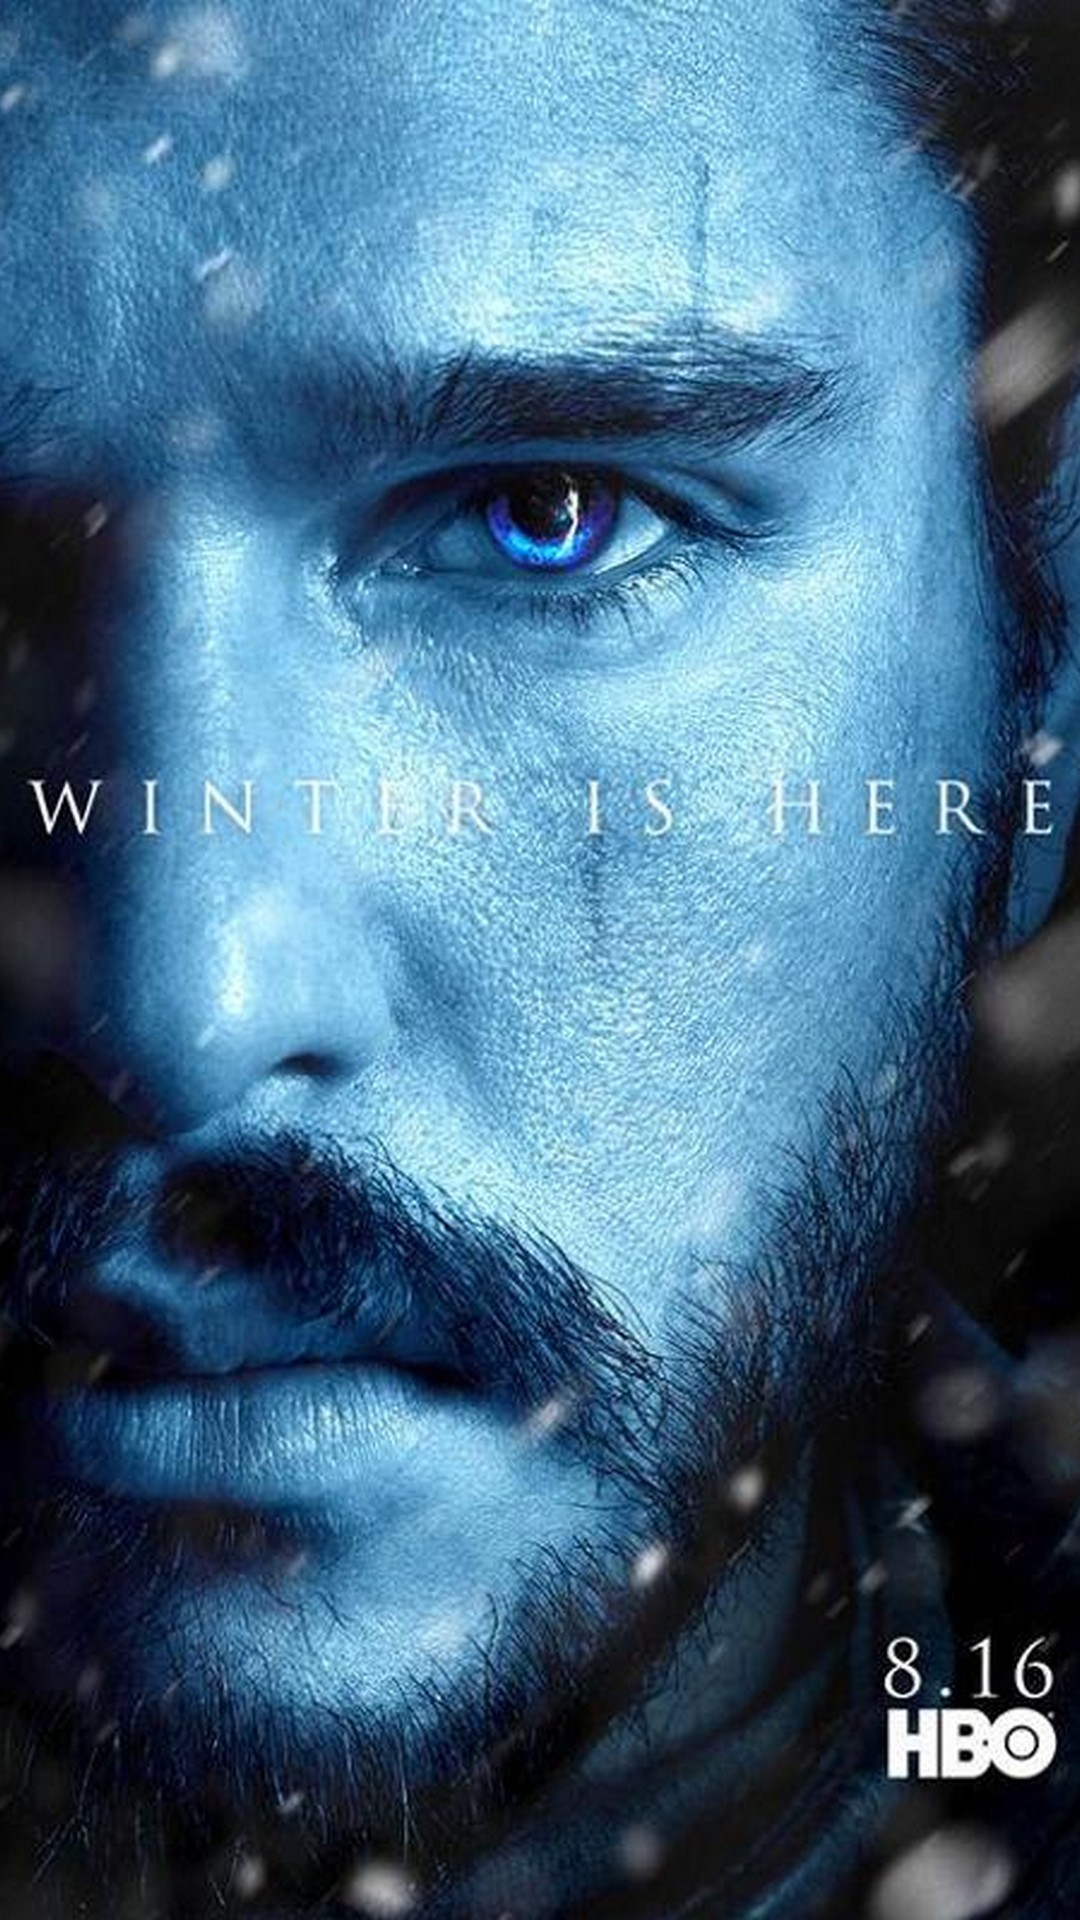 Game Of Thrones 8 Season Poster Movie With High-resolution - Games Of Thrones Winter Is Here , HD Wallpaper & Backgrounds